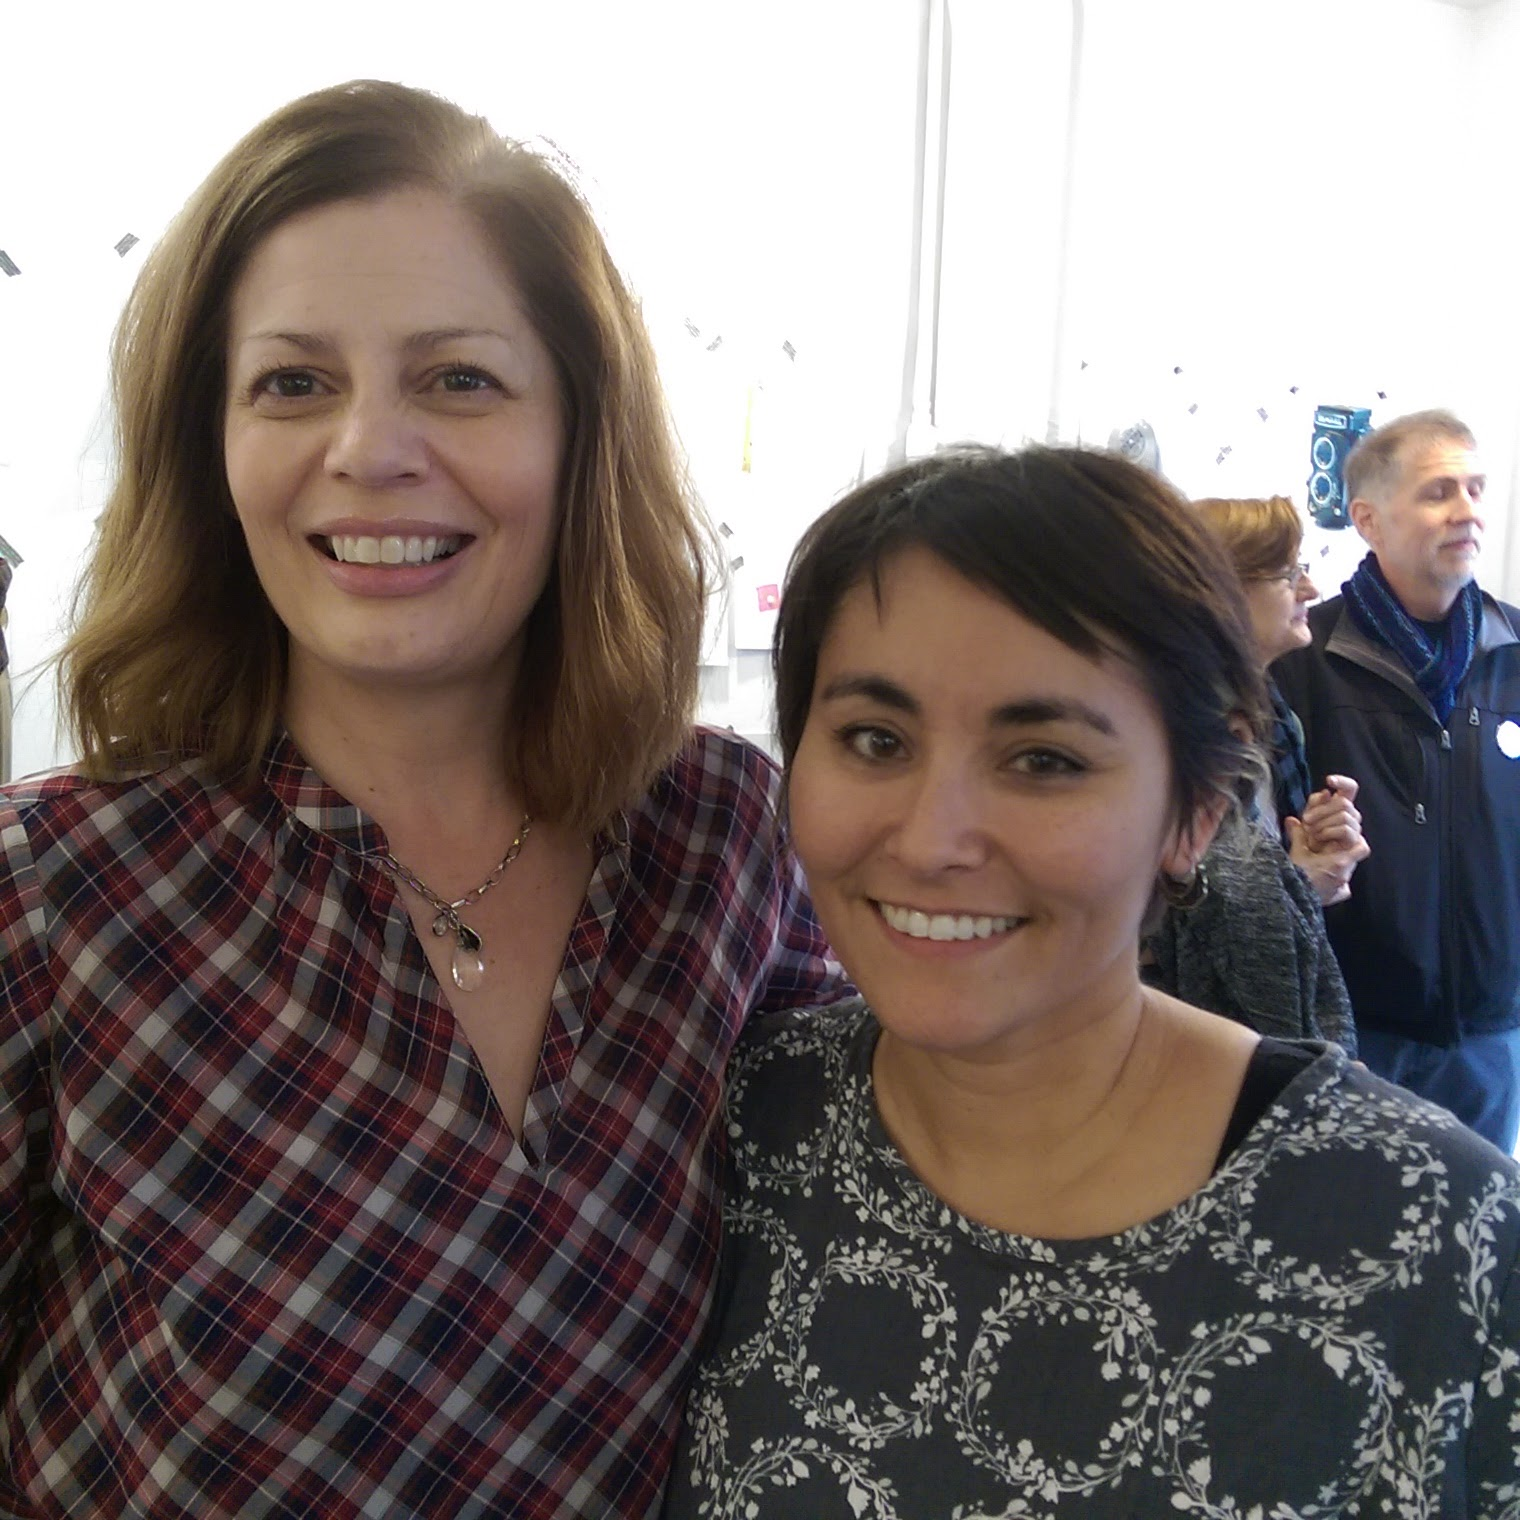 Pictured L-R: A goofy-looking me standing next to one of my idols, Lisa Solomon, during the closing reception at Irving Street Projects. It was such a treat to meet her adorable family and see first-hand her phenomenal work capturing everyone's keepsakes -- a dream come true!